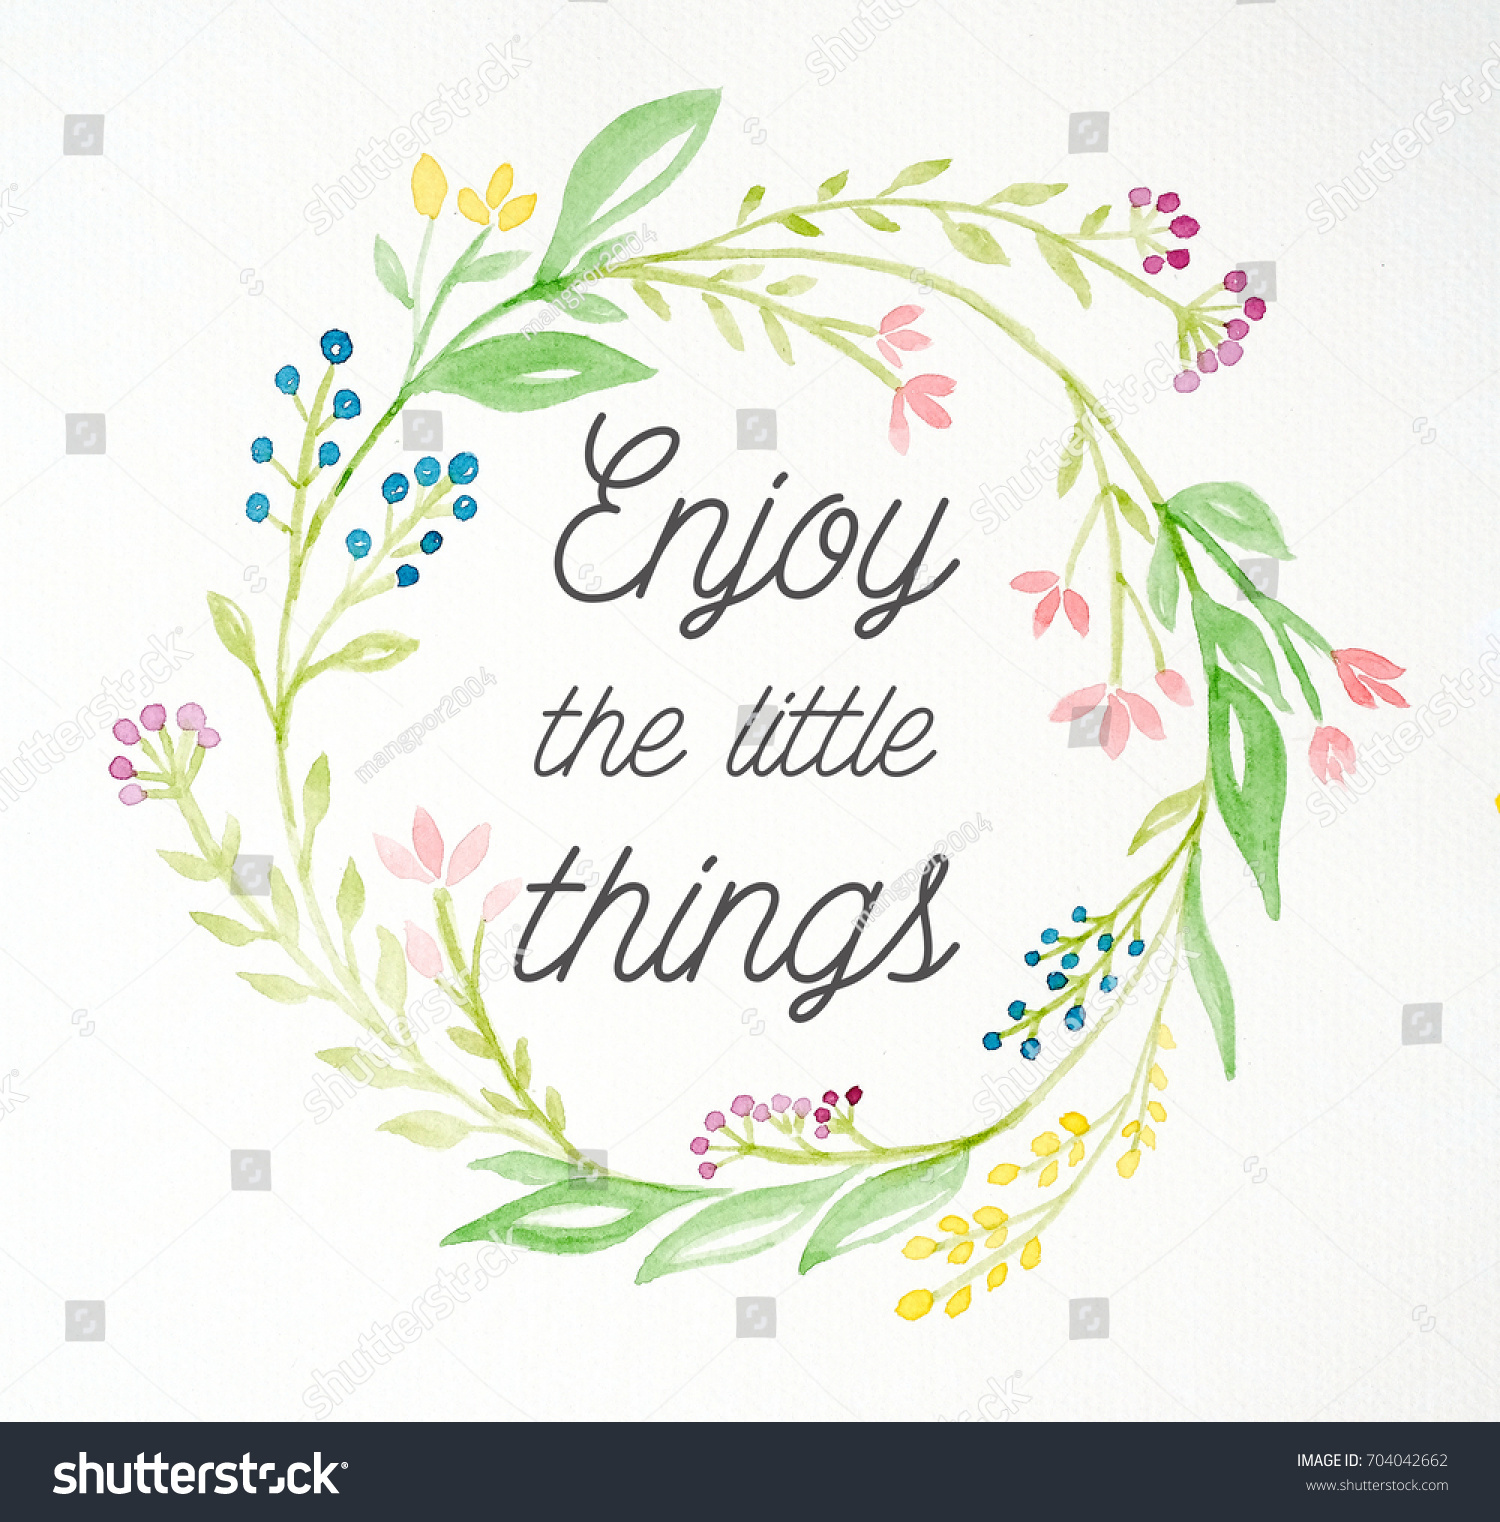 Enjoy The Little Things Quotation On Flowers Wreath Watercolor Painting  Background, Life Quote, Positive